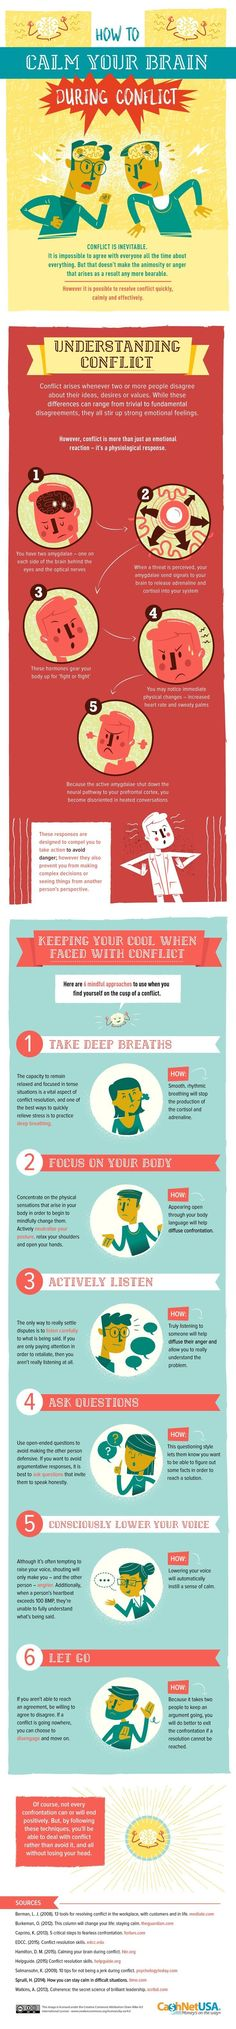 How to keep calm during conflict: